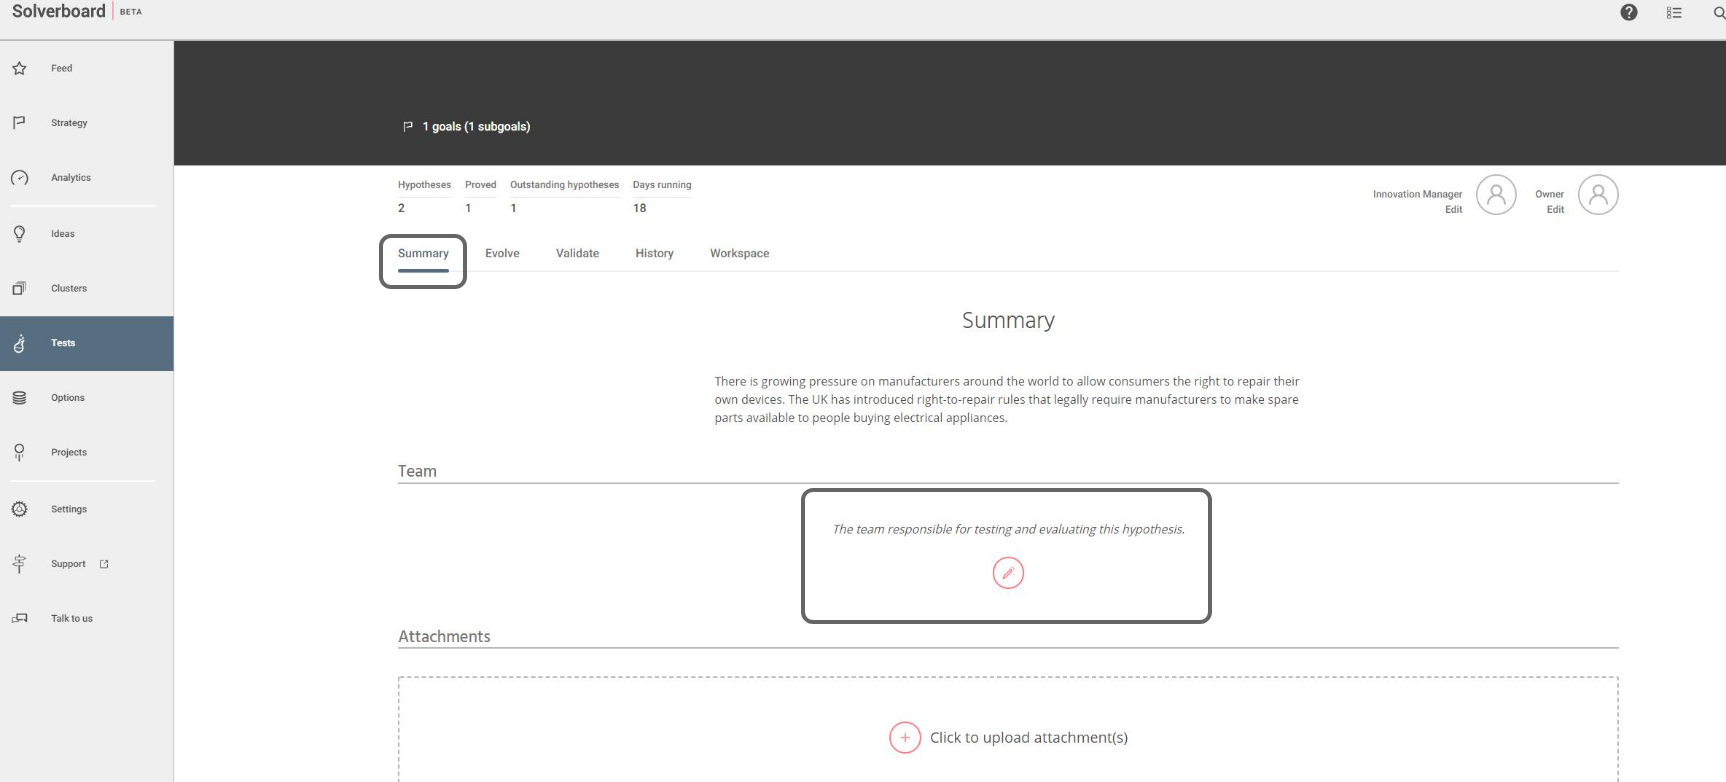 Shows Tests > Summary. Team panel is highlighted.